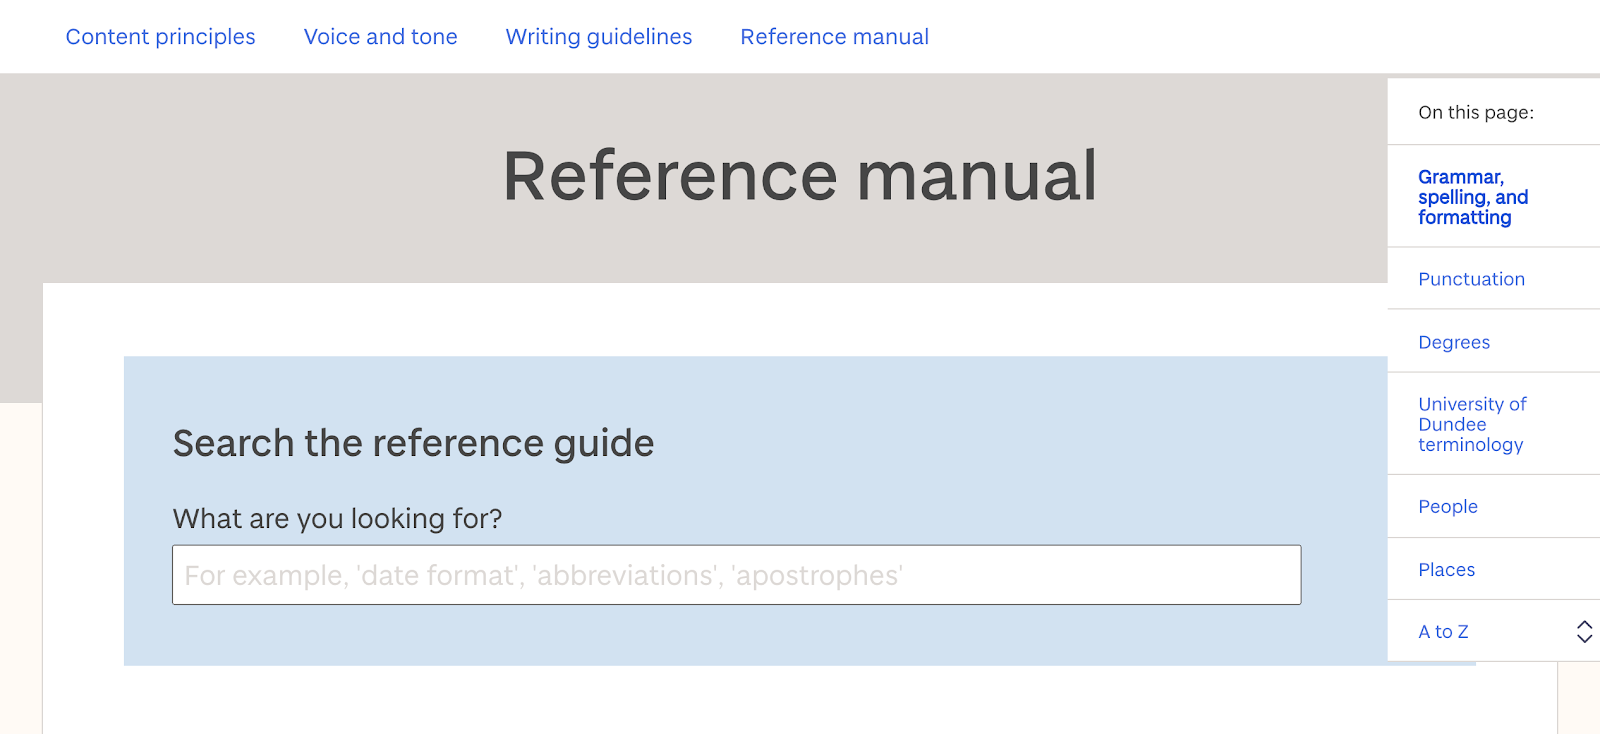 An image showing the reference manual section of the online content style guide for the University of Dundee. It simply shows the search bar for the guide.